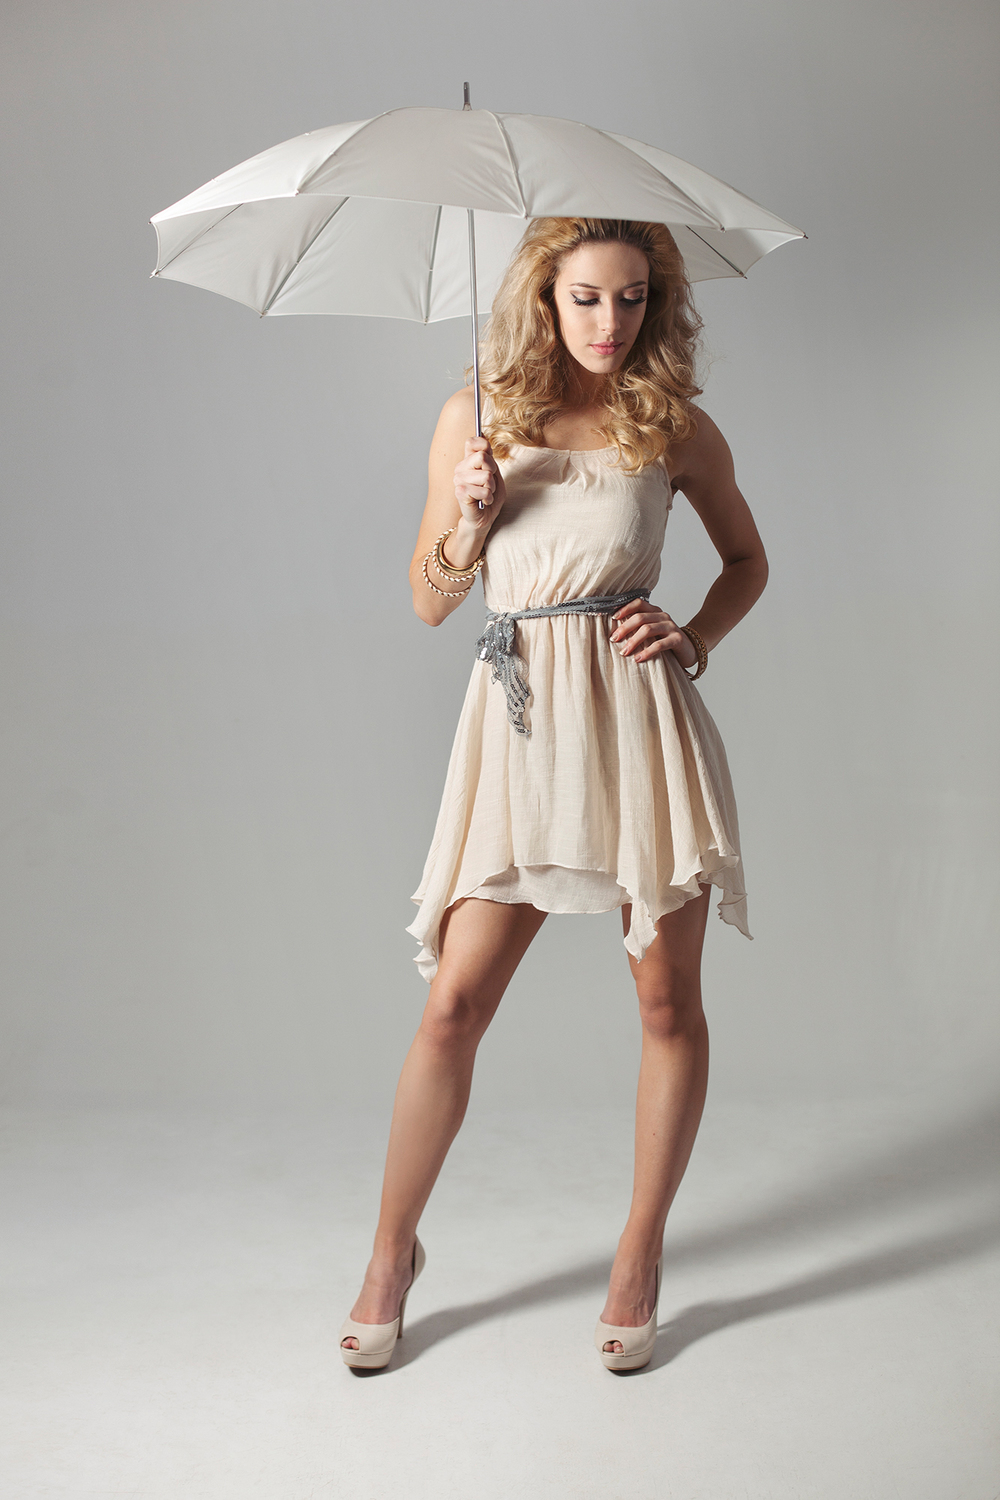 Model with an umbrella - Fashion